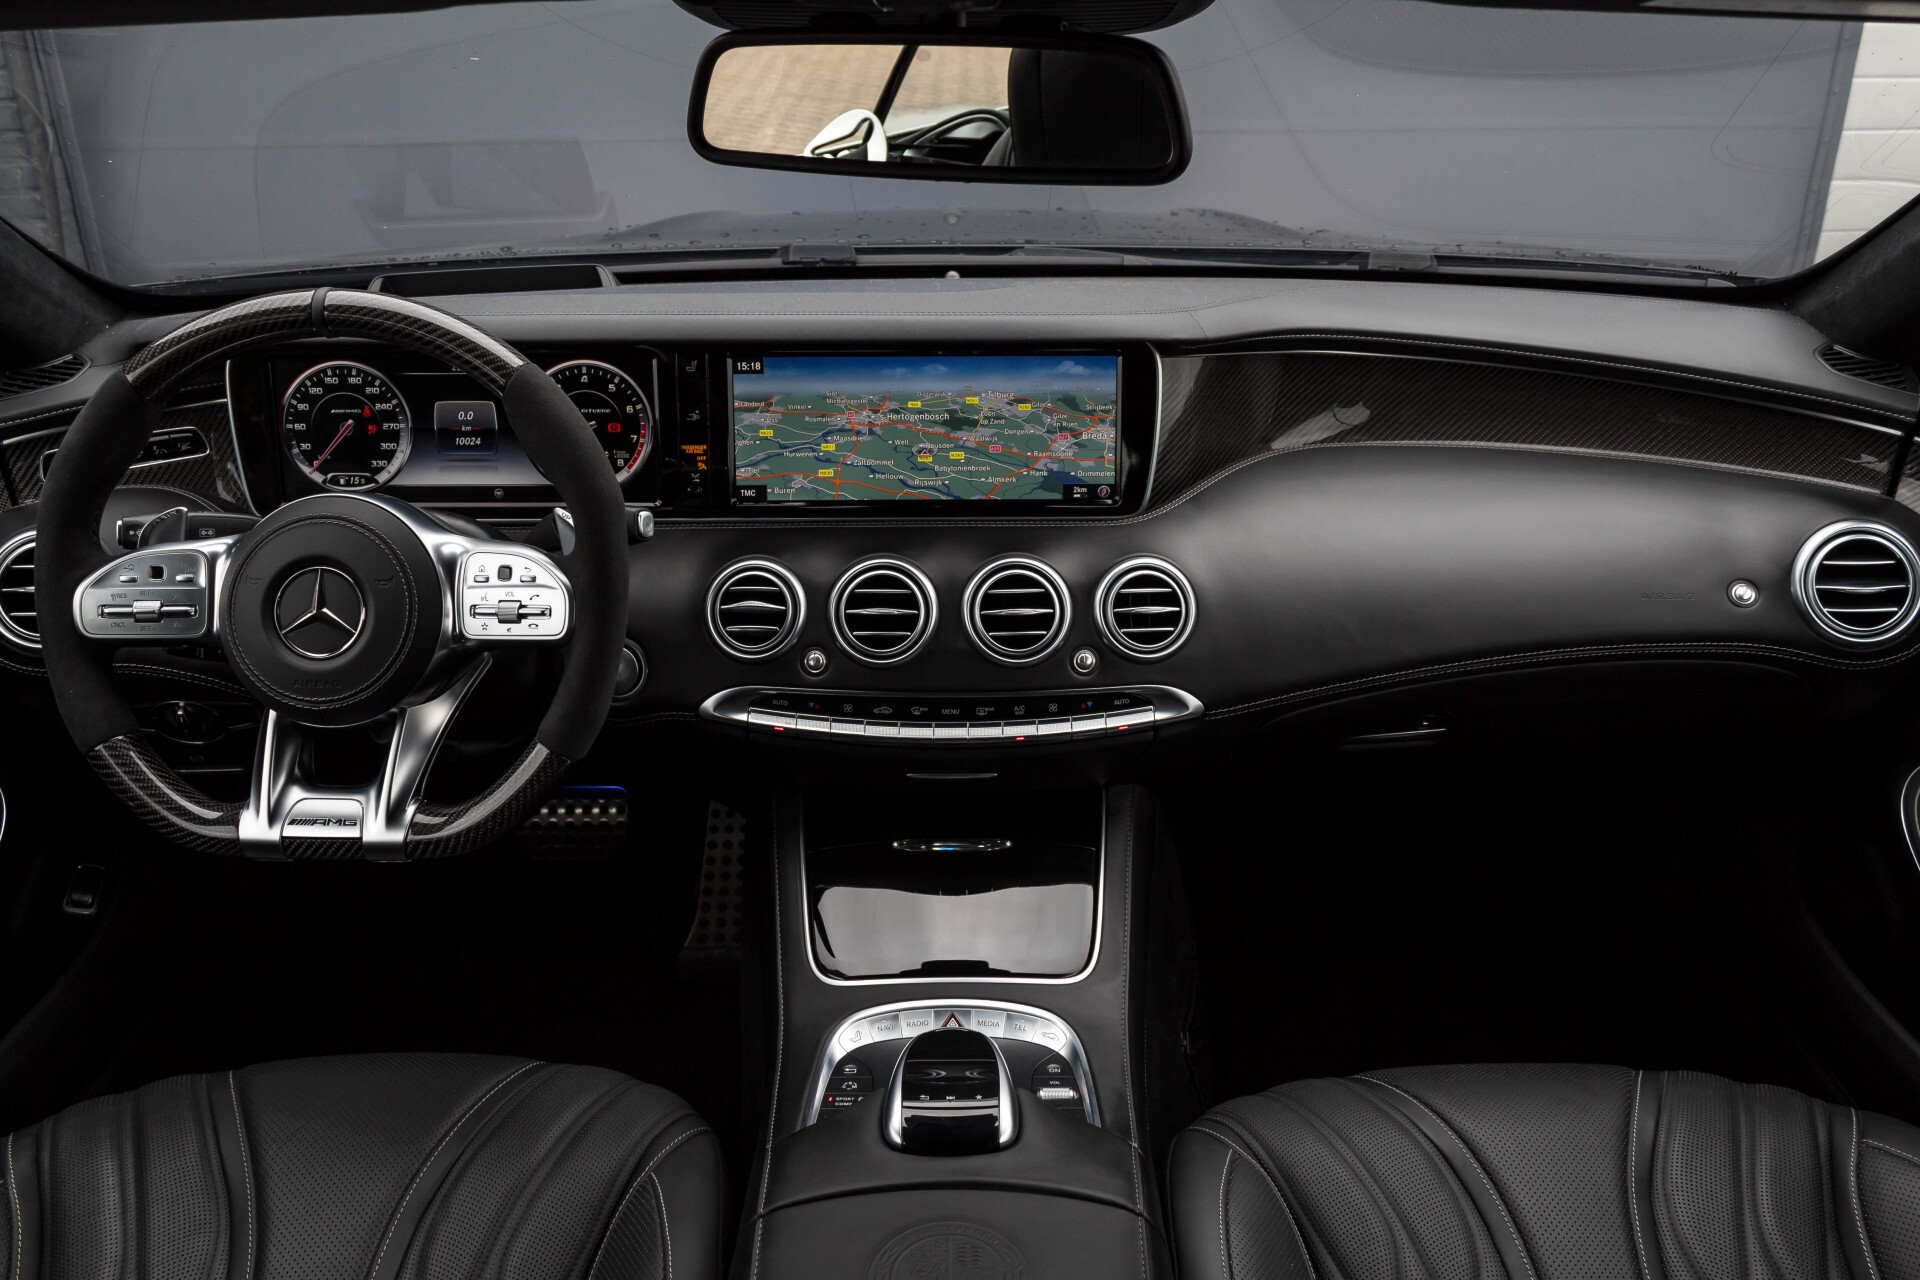 Mercedes-Benz S-Klasse Cabrio 63 AMG 4-M Ceramic/Designo/Carbon/High End/TV Aut7 Foto 9